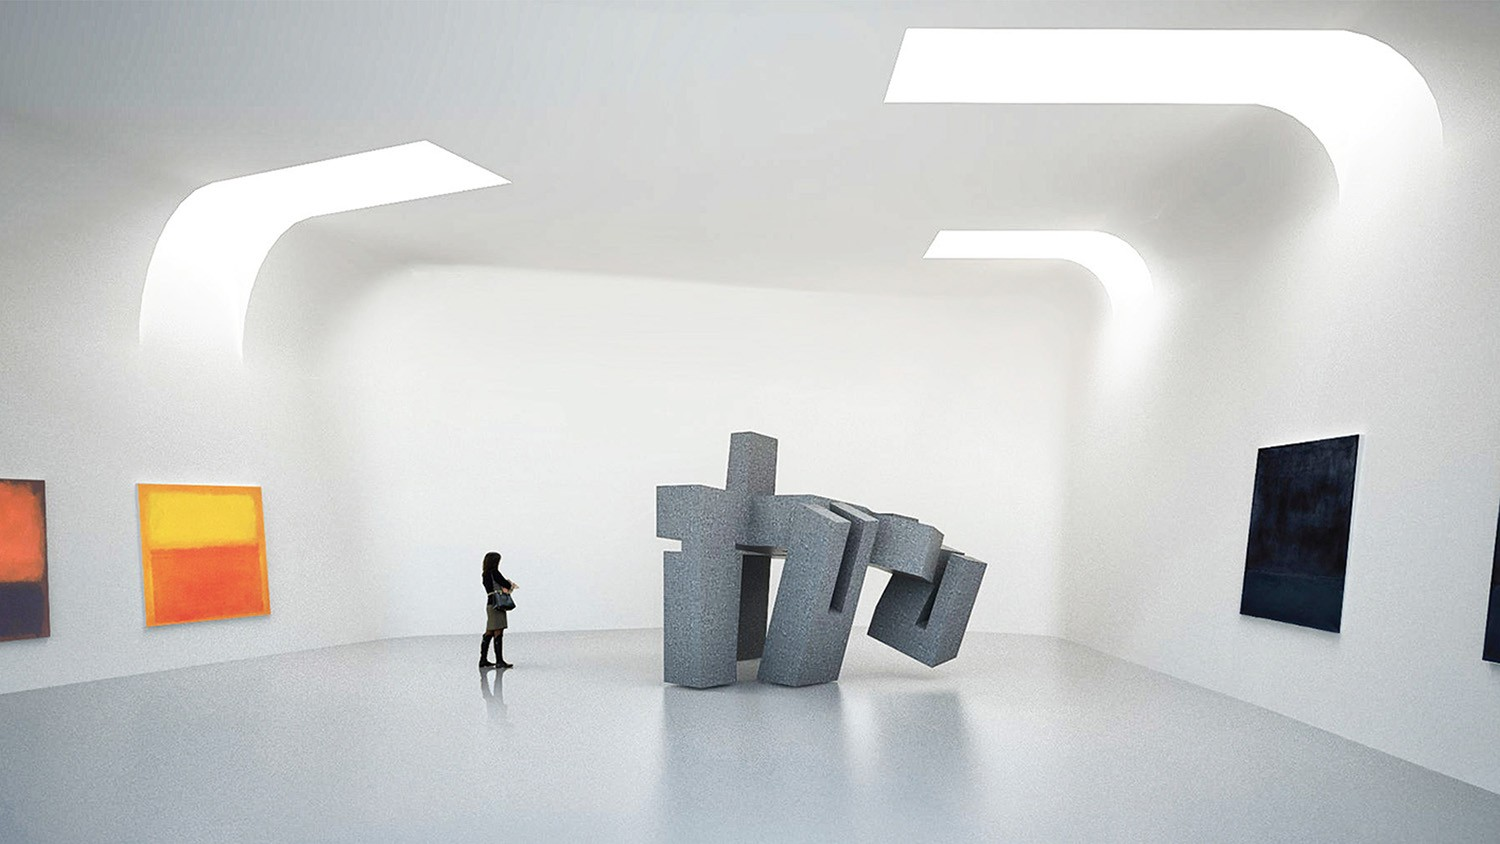 https://s3.us-east-2.amazonaws.com/steven-holl/uploads/projects/project-images/SHA_AngersGalleryInterior_WH.jpg